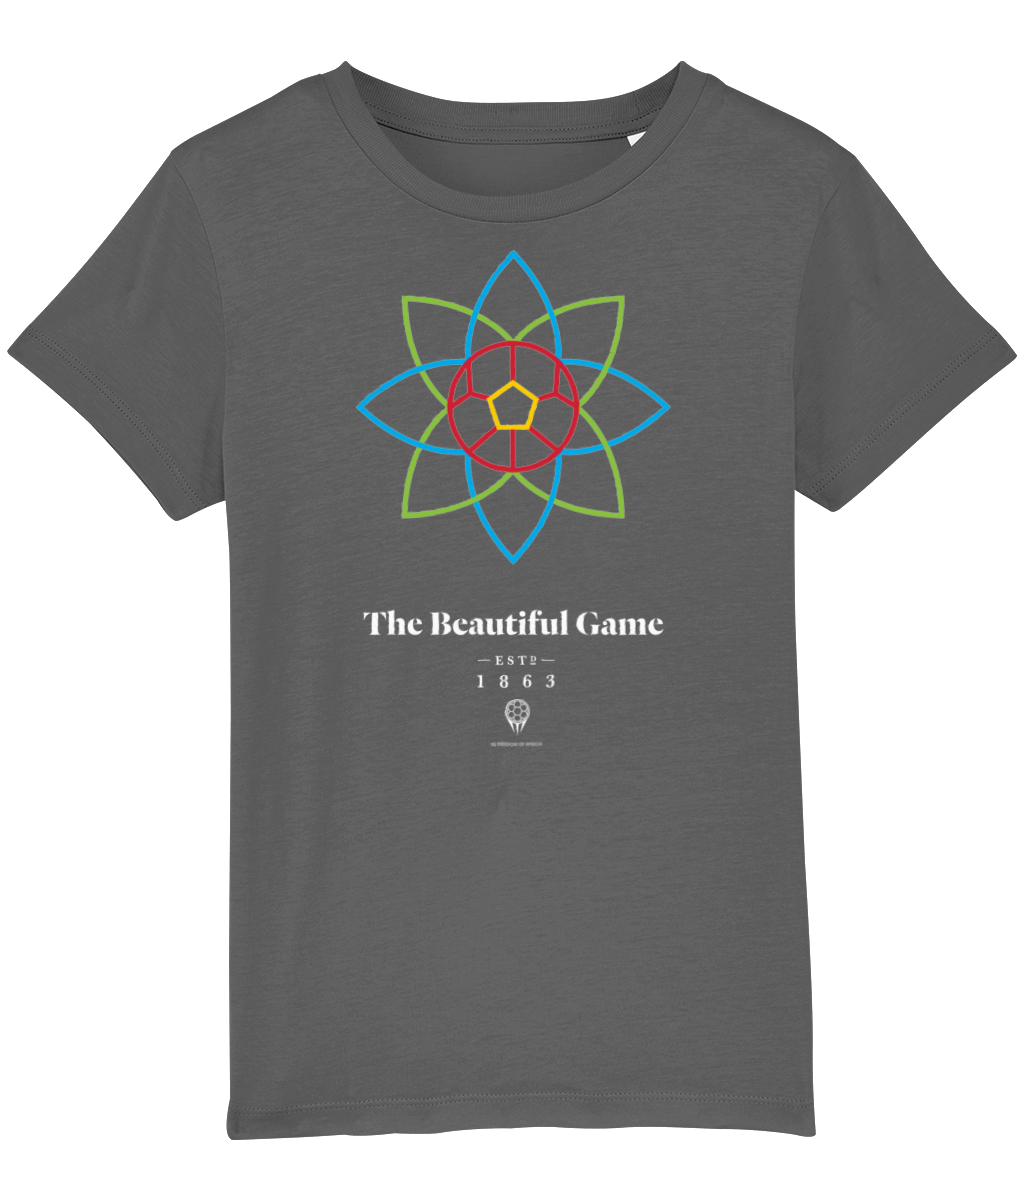 The Beautiful Game - Kids T-Shirt - Pelé